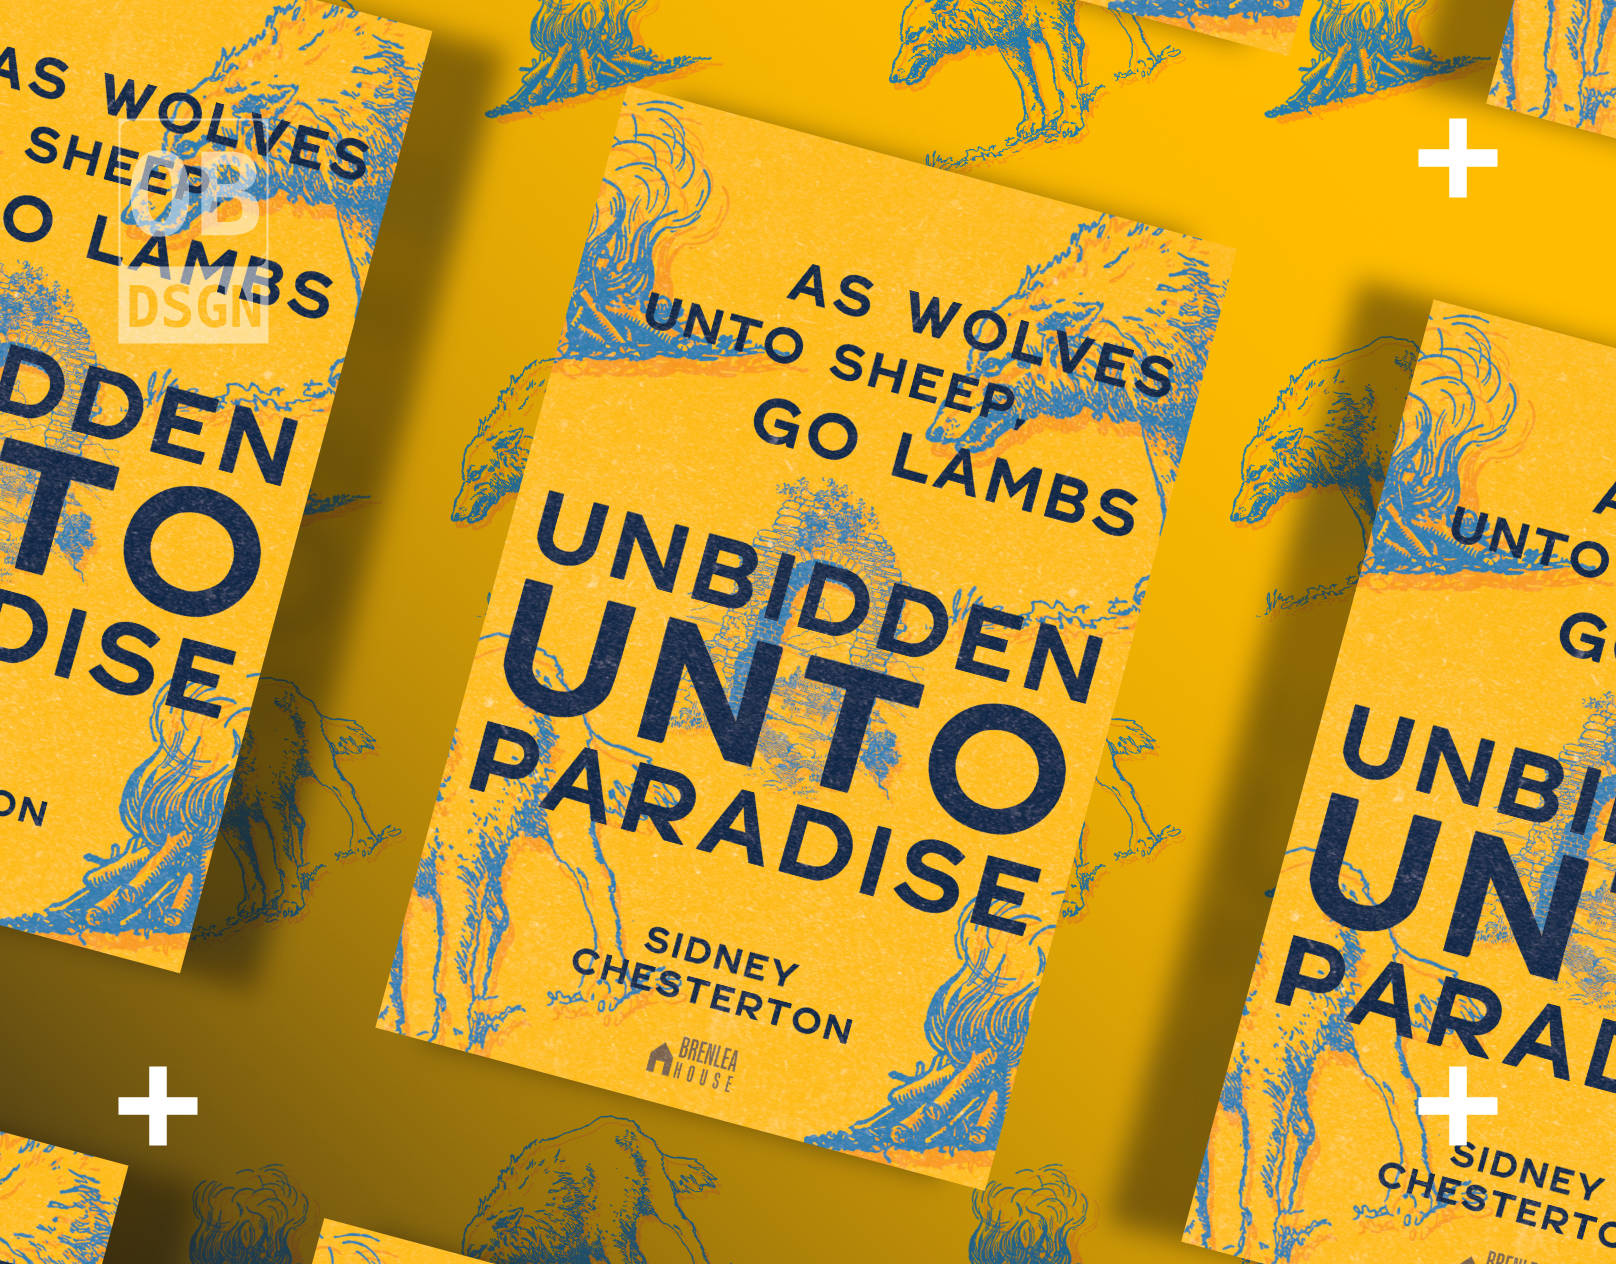 unbiden wolves book cover